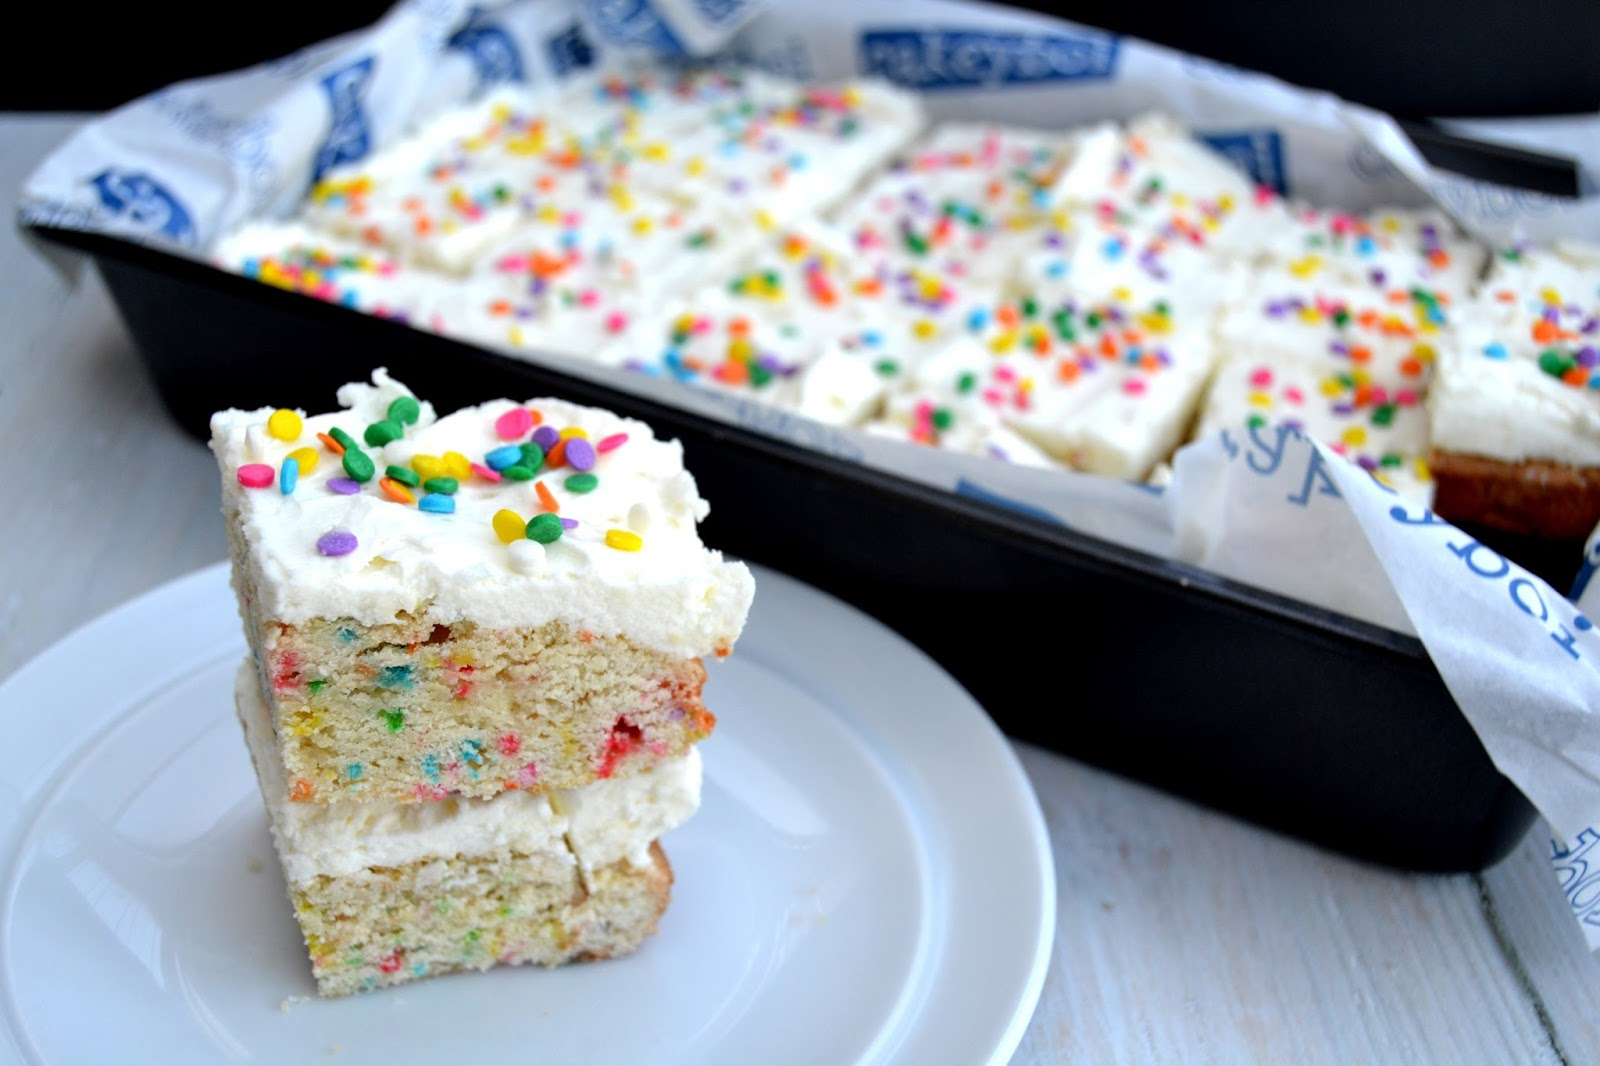 Birthday Cake Bars Funfetti Sprinkles Vanilla Almond Flavoured Cut Into Individual Servings